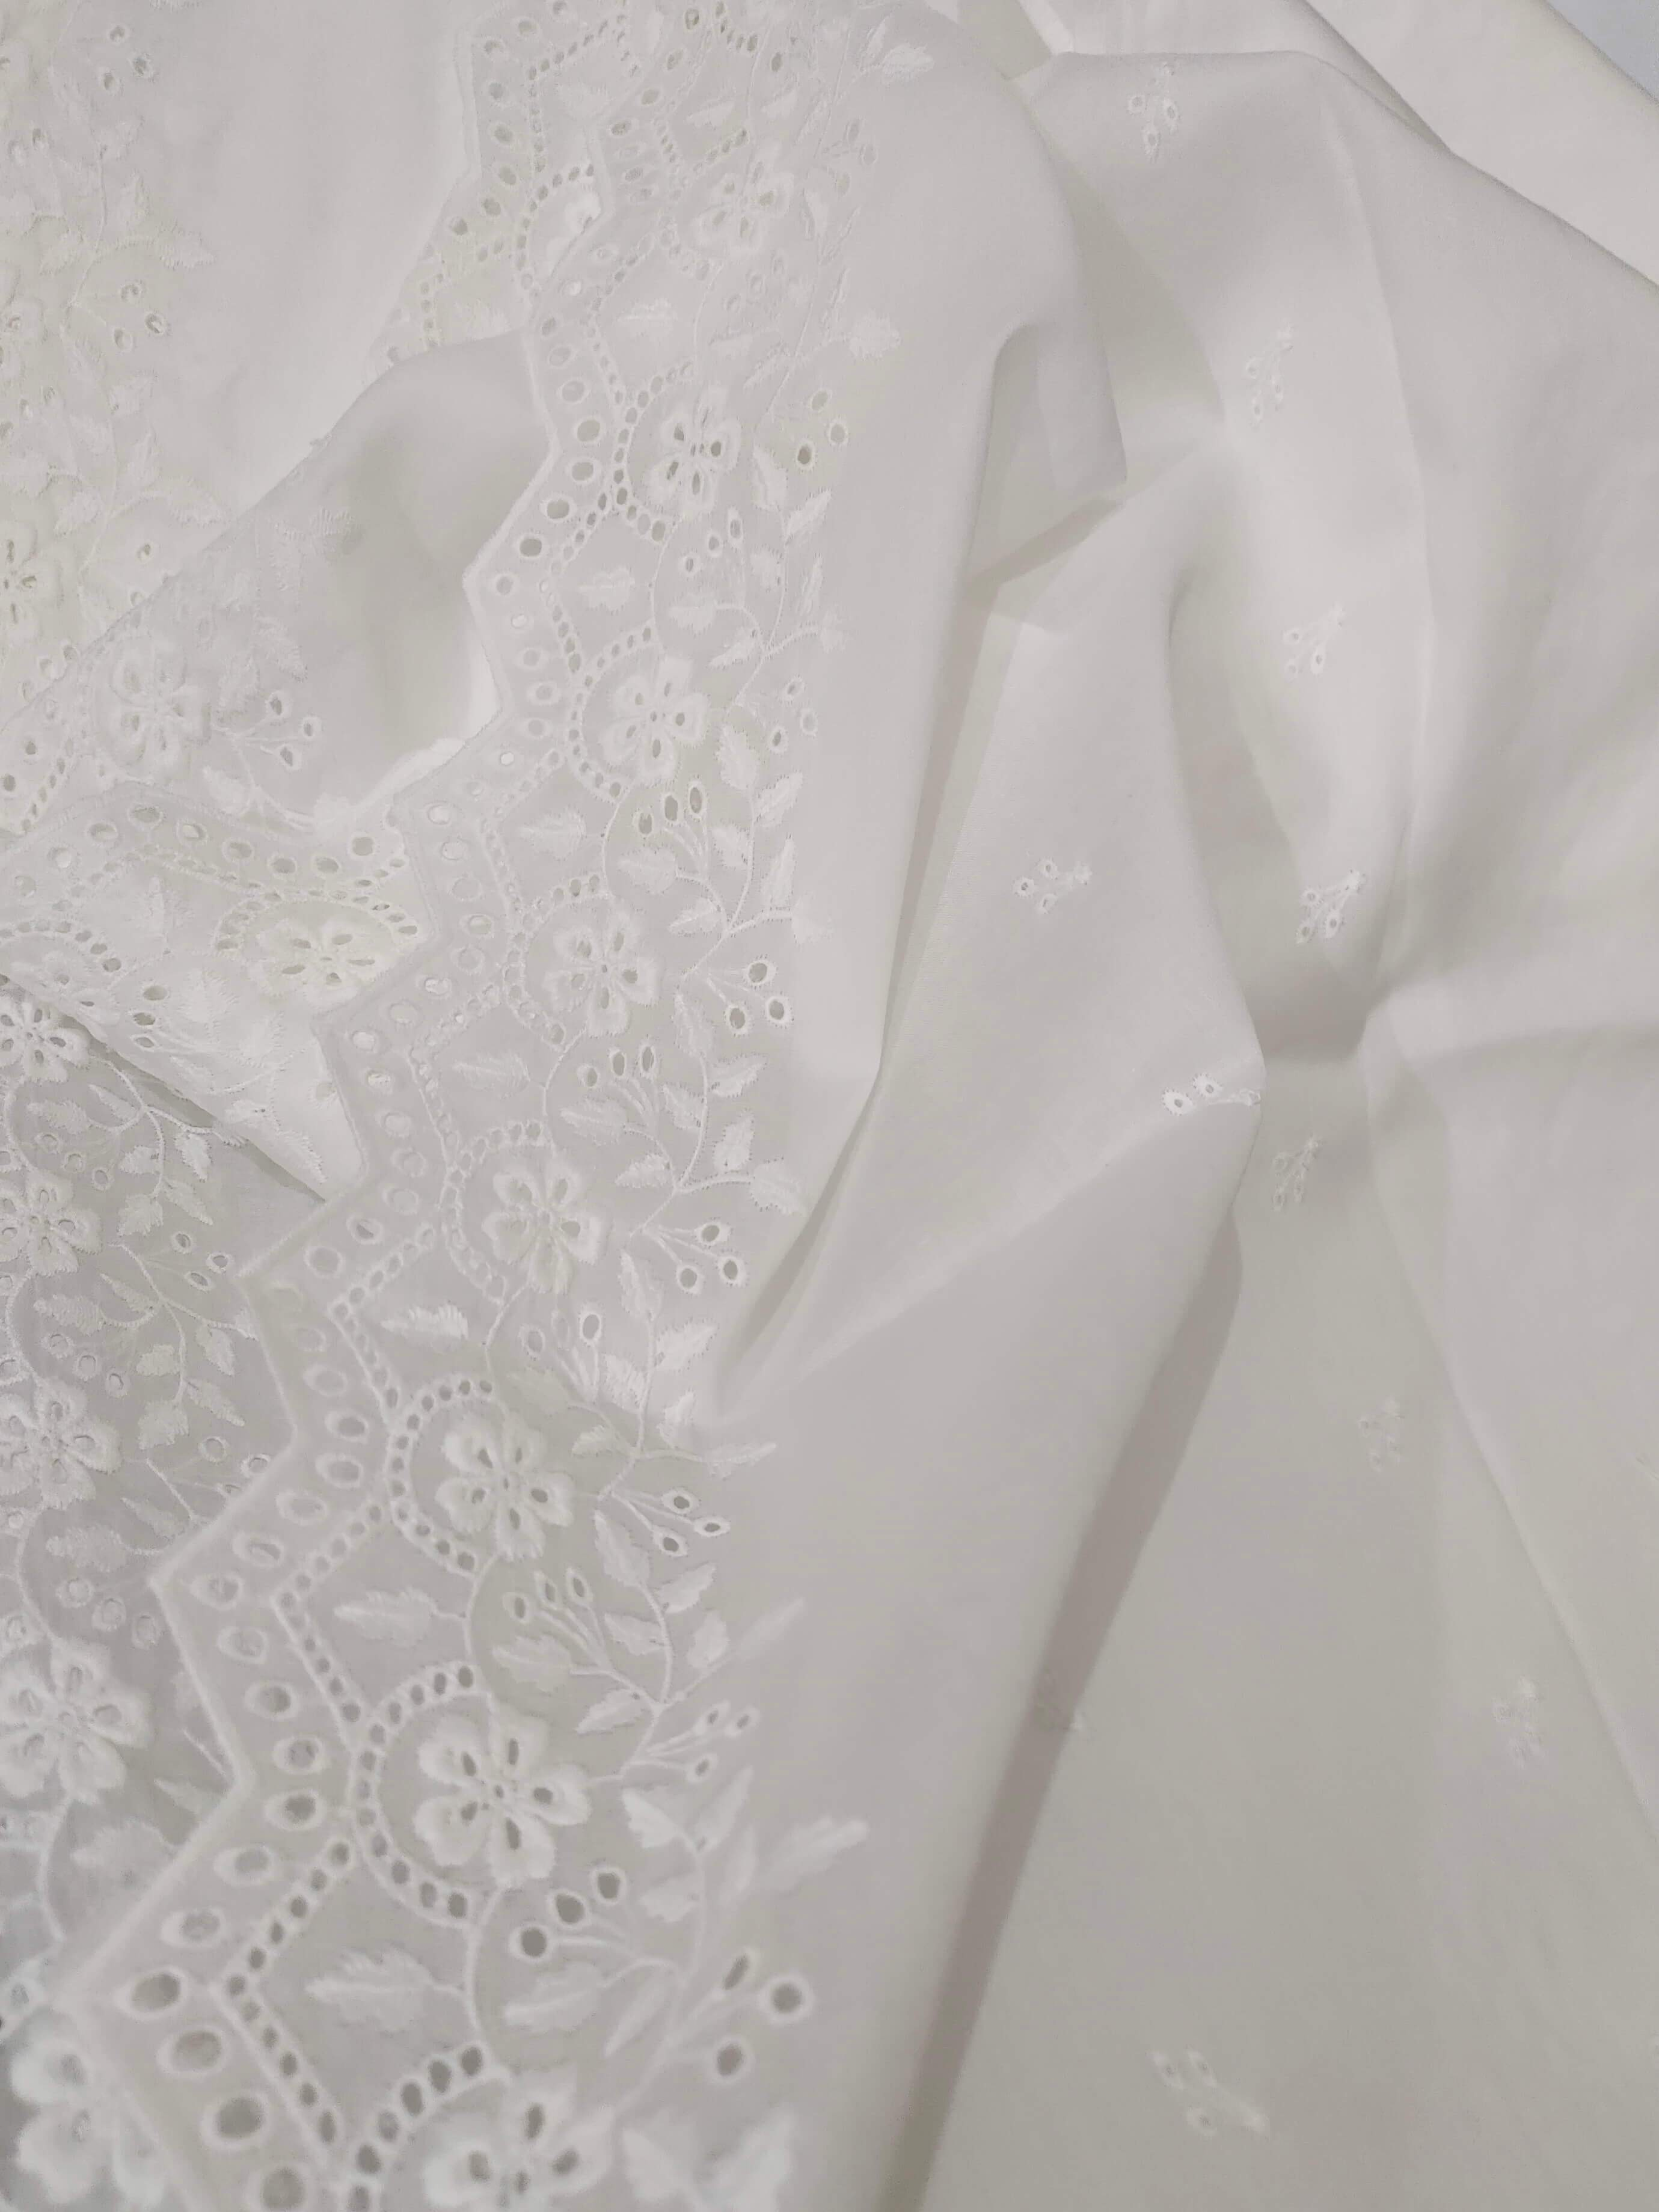 White Chikankari Embroidered Shawl Cotton Lawn Fabric DP-02 - FaisalFabrics.pk